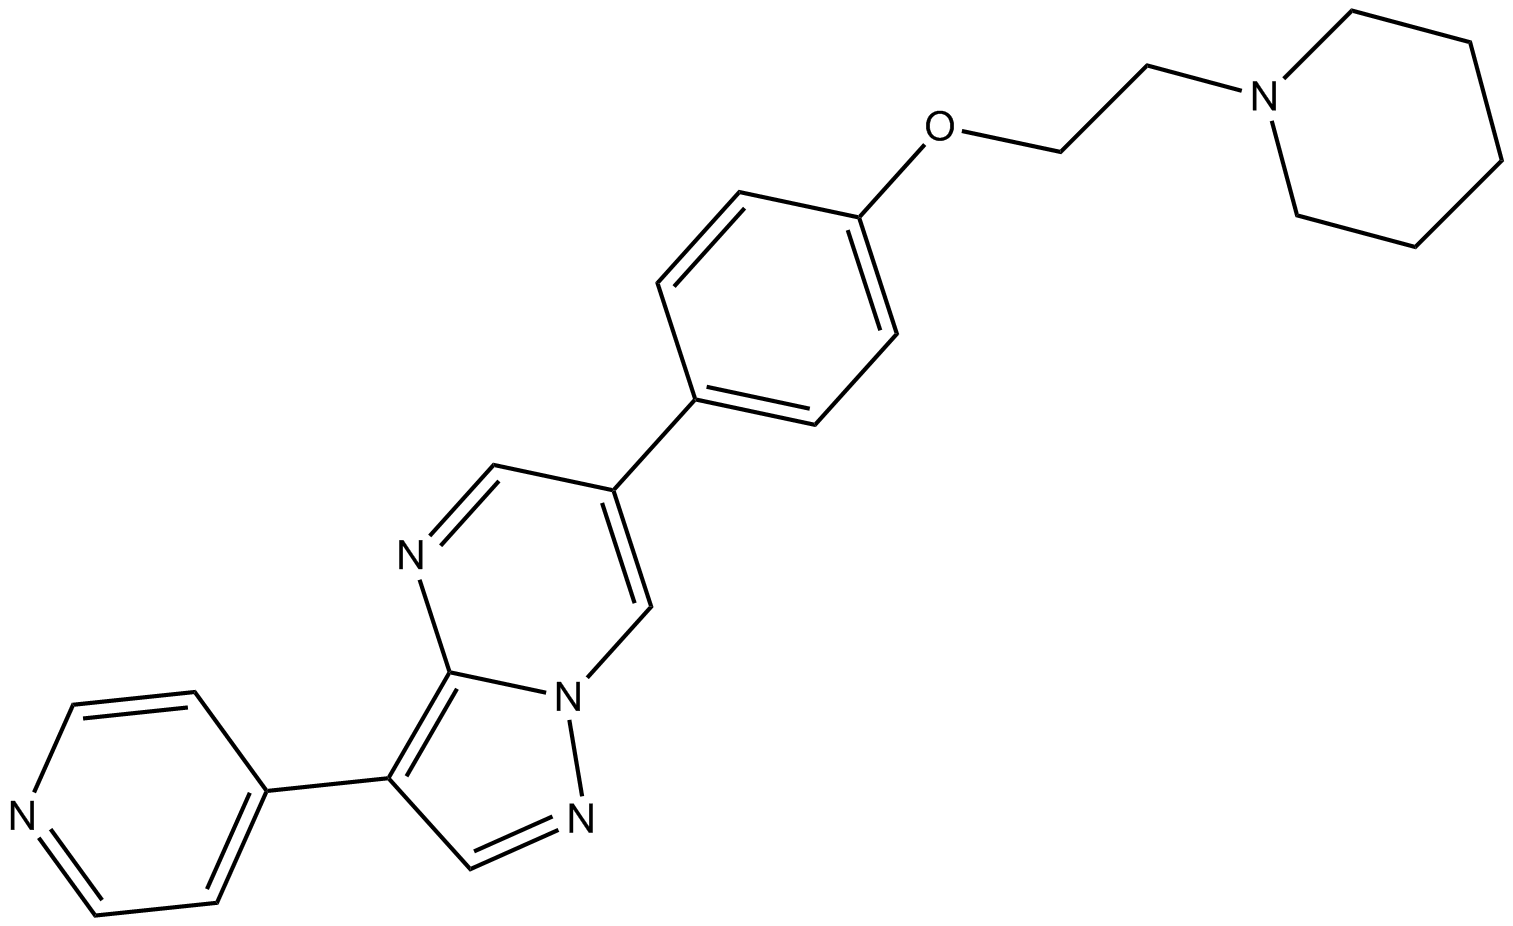 Dorsomorphin (Compound C)